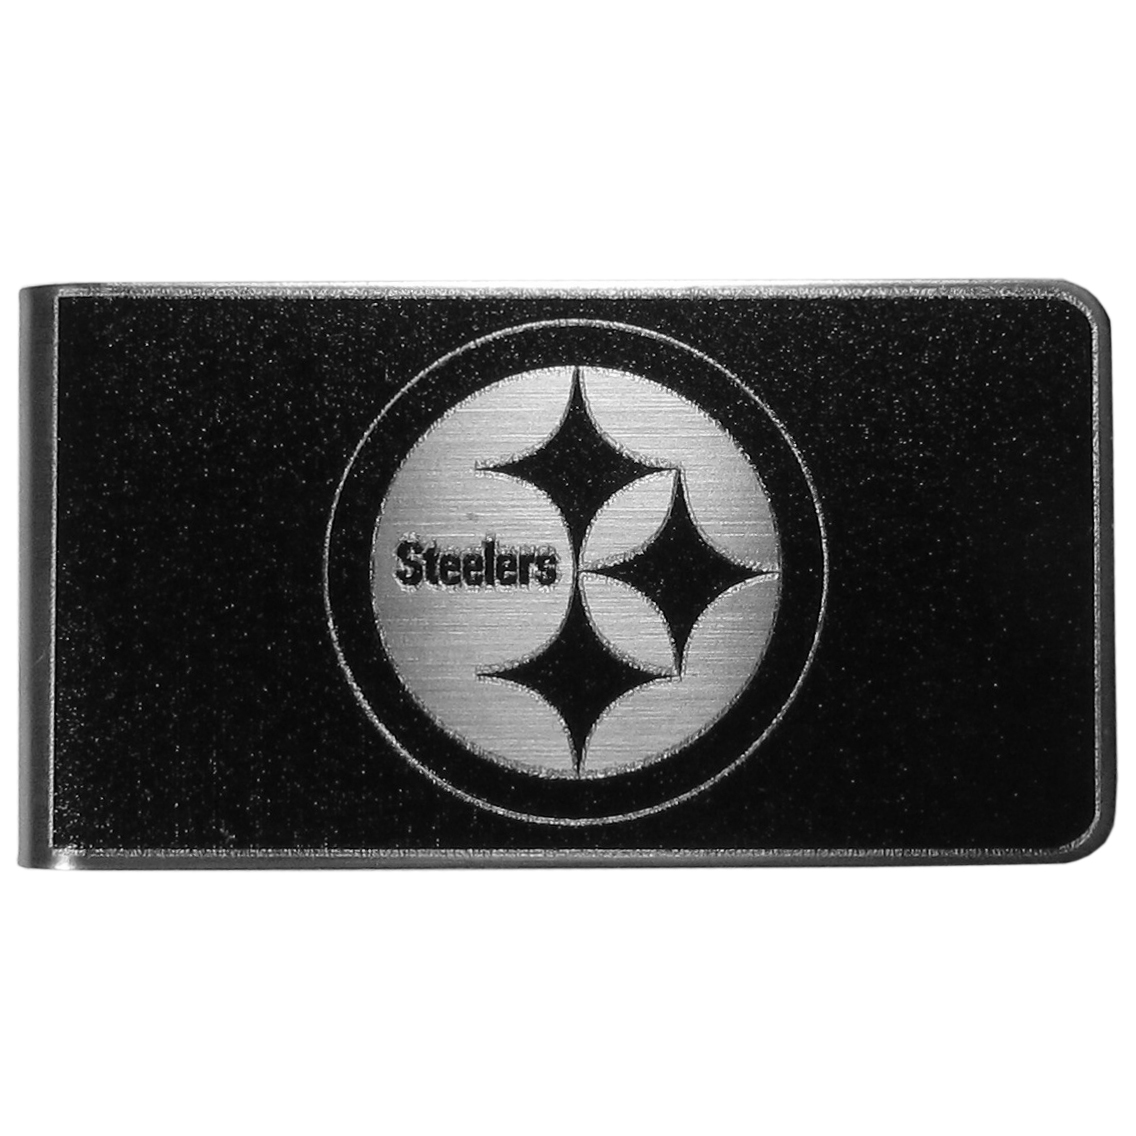 Pittsburgh Steelers Black and Steel Money Clip - Our monochromatic steel money clips have a classic style and superior quality. The strong, steel clip has a black overlay of the Pittsburgh Steelers logo over the brushed metal finish creating a stylish men's fashion accessory that would make any fan proud.